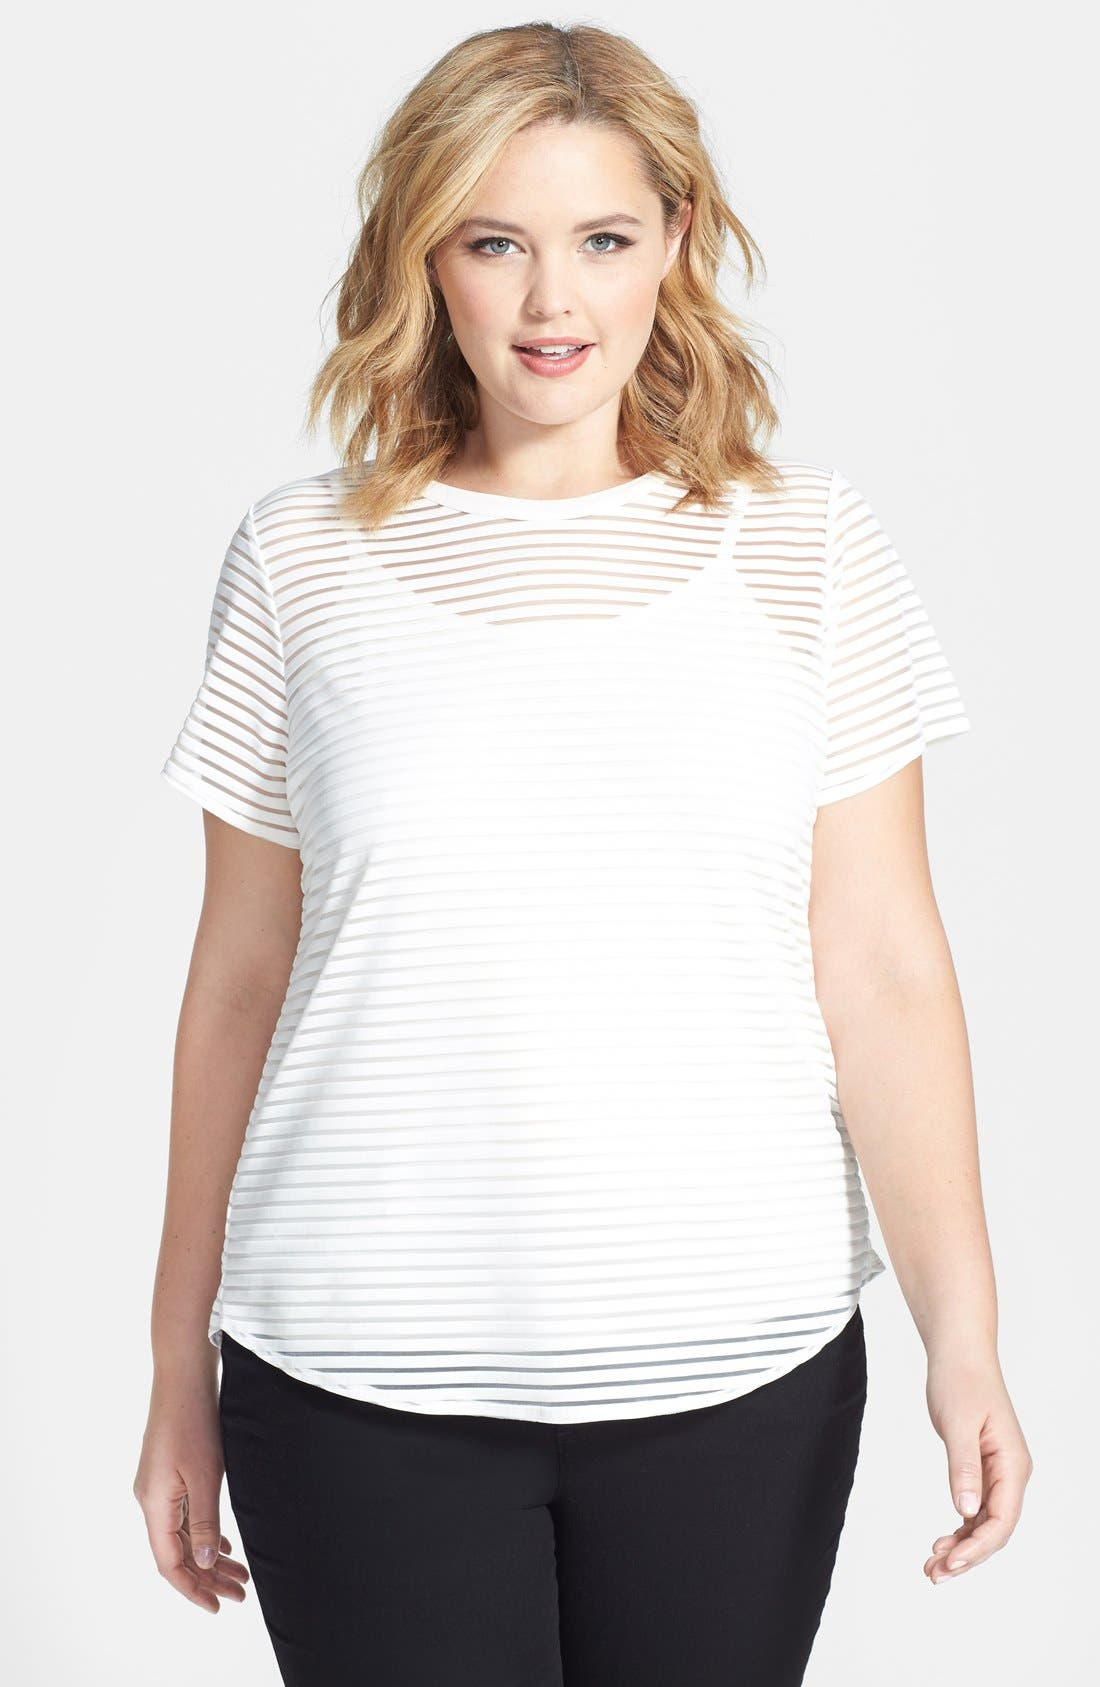 Alternate Image 1 Selected - Vince Camuto Sheer Stripe Tee & Camisole (Plus Size)